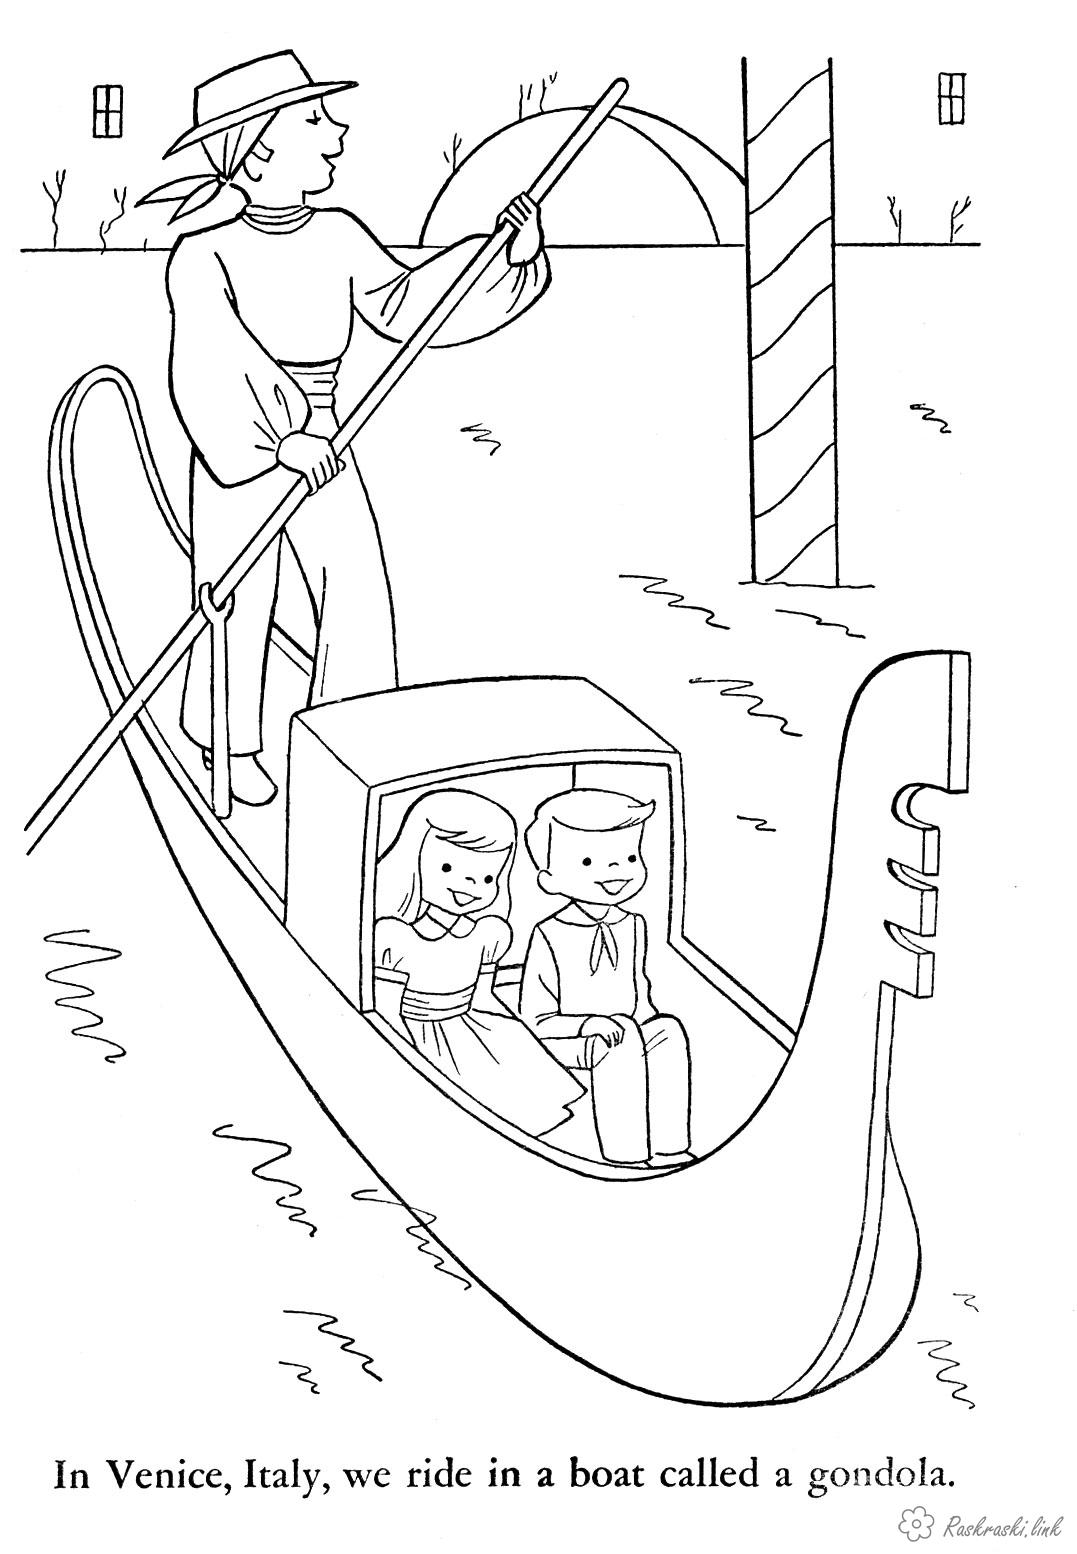 Coloring Europe coloring pages books for children, travel, Europe, boy, girl, man, boat, river